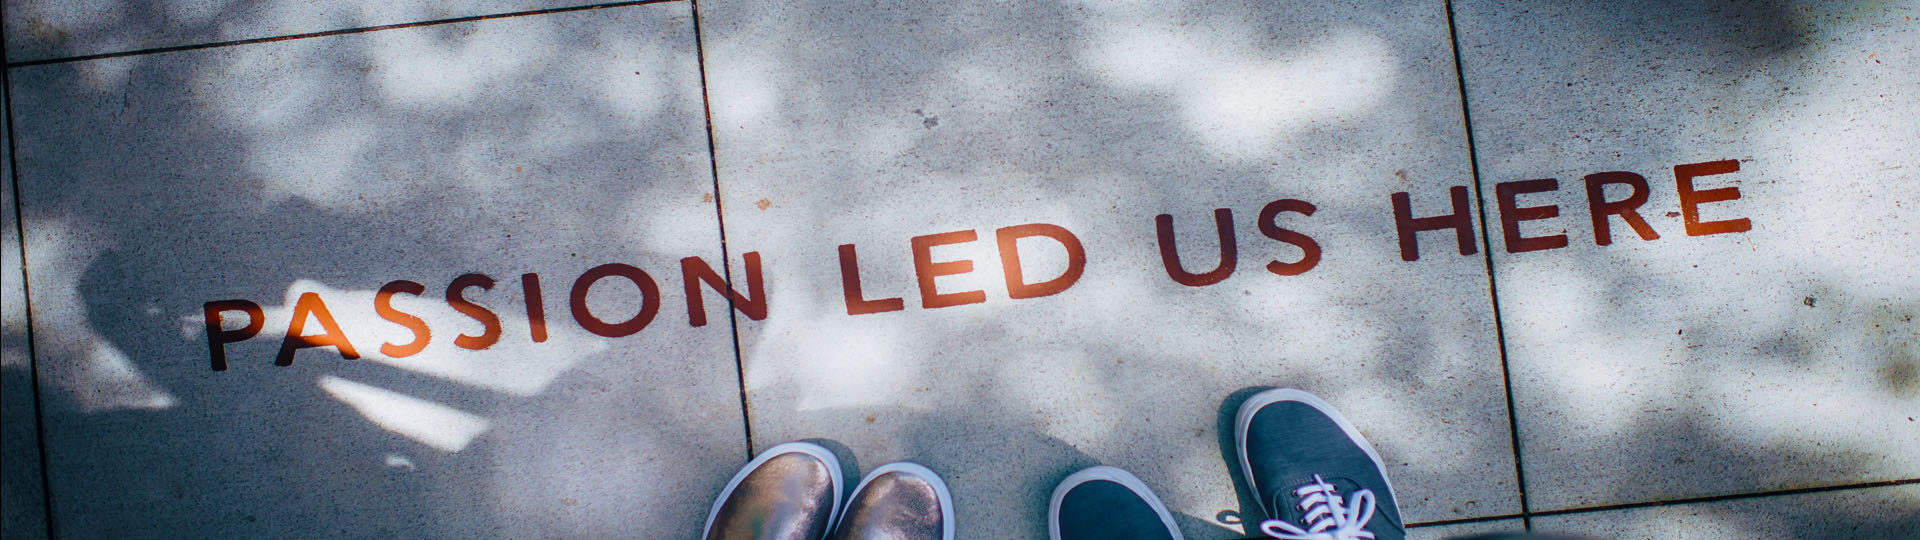 Writing on Pavement - Passion Led Us Here - Representing Purpose